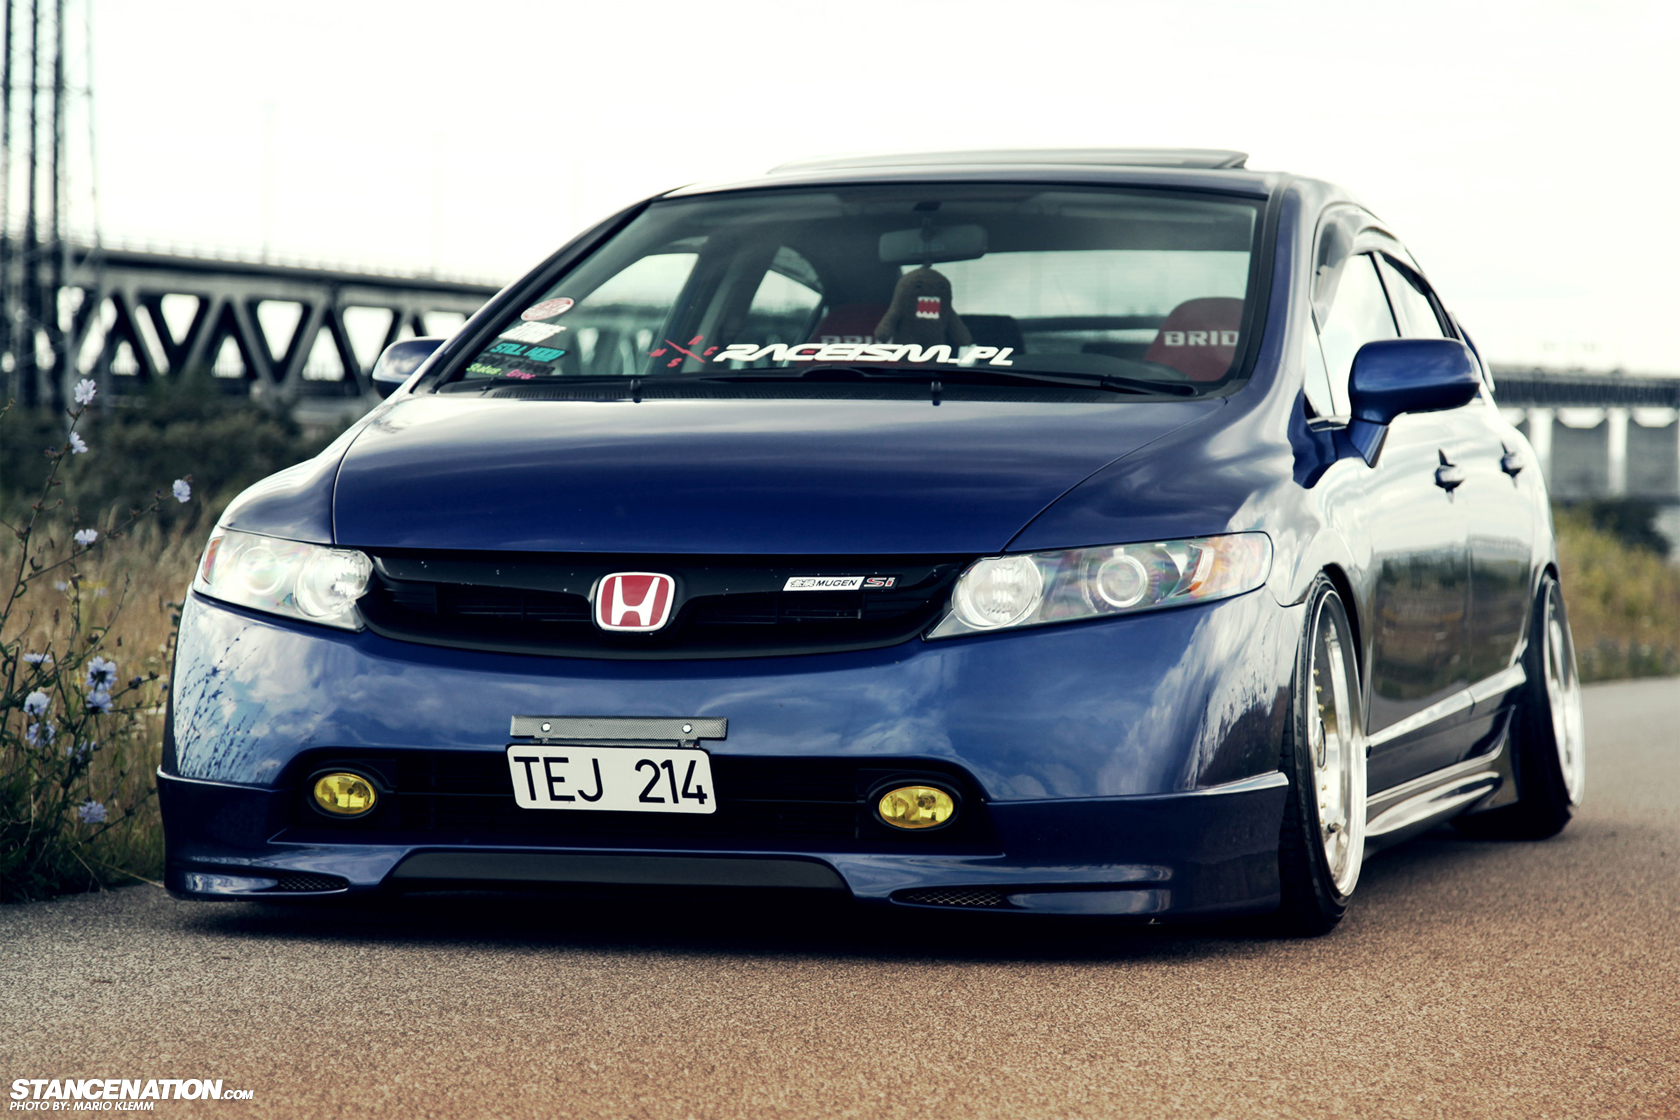 2007 Jdm Civic Si | www.imgkid.com - The Image Kid Has It!